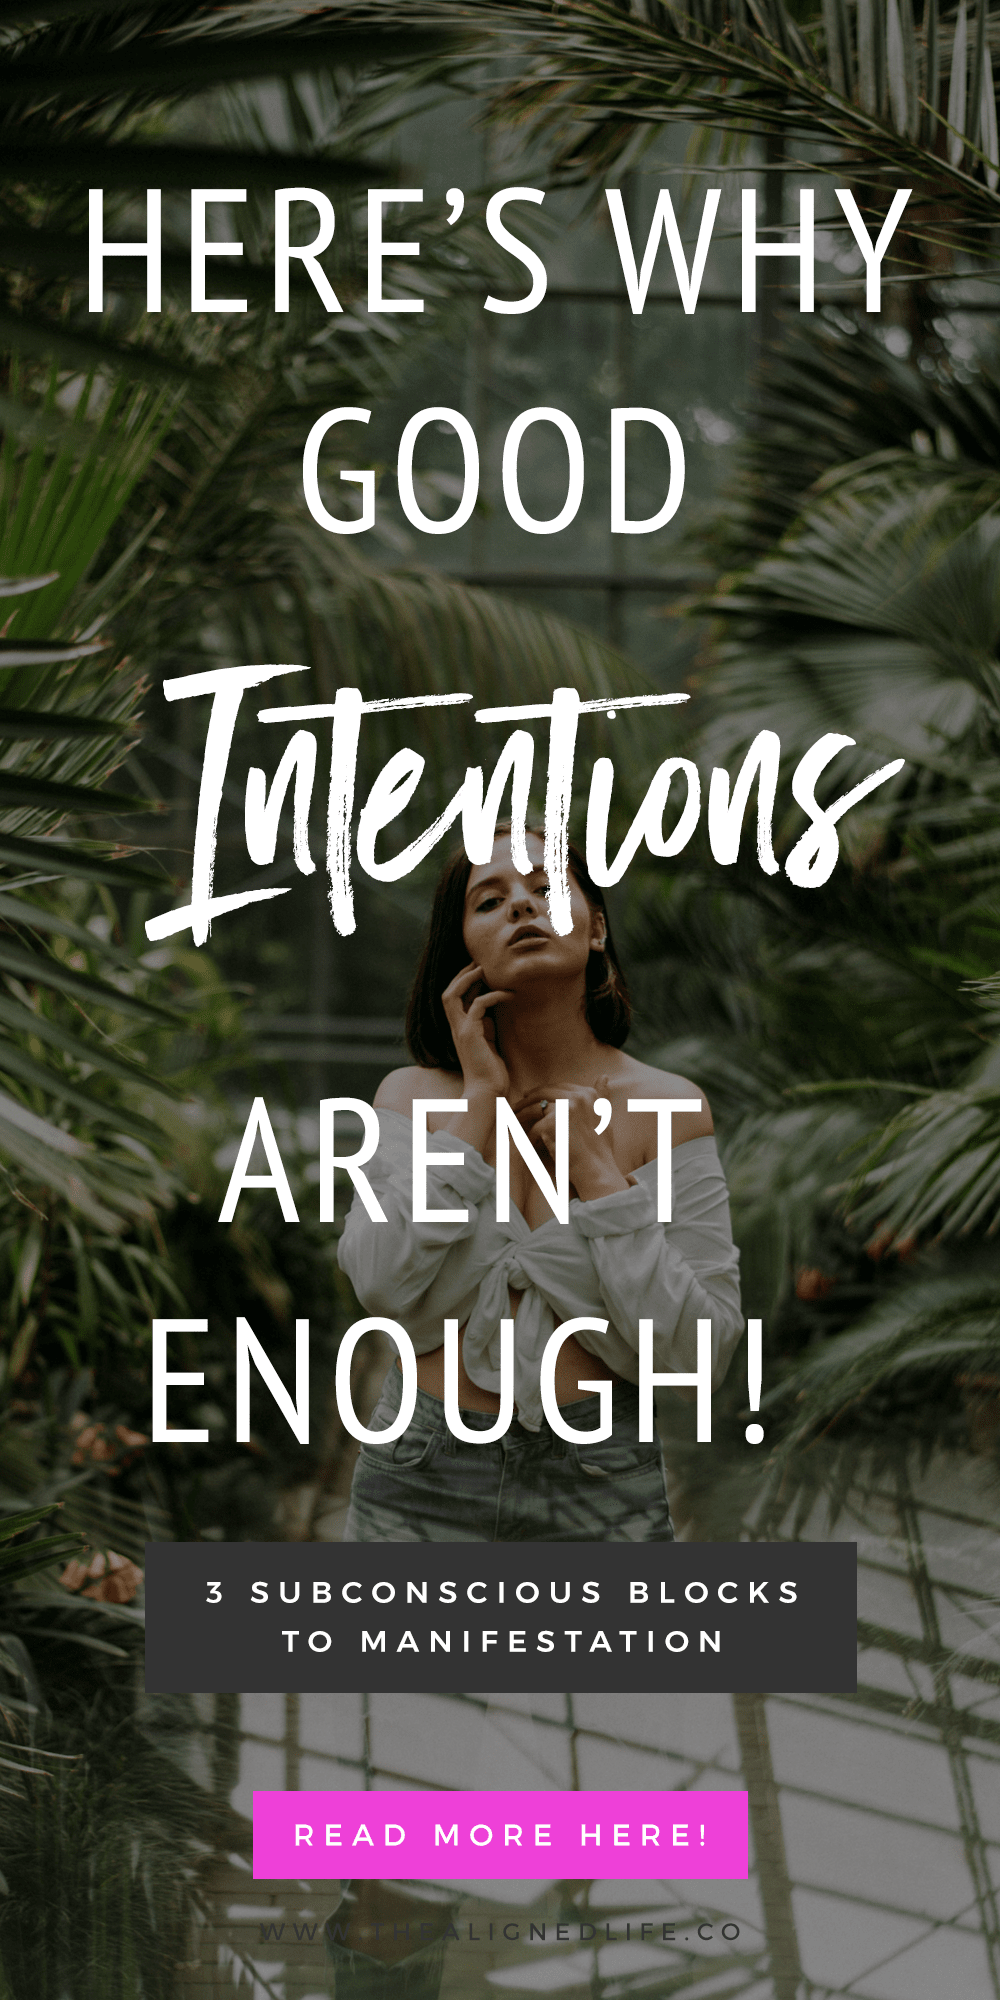 Why Good Intentions Aren't Enough! 3 Subconscious Blocks To Manifestation